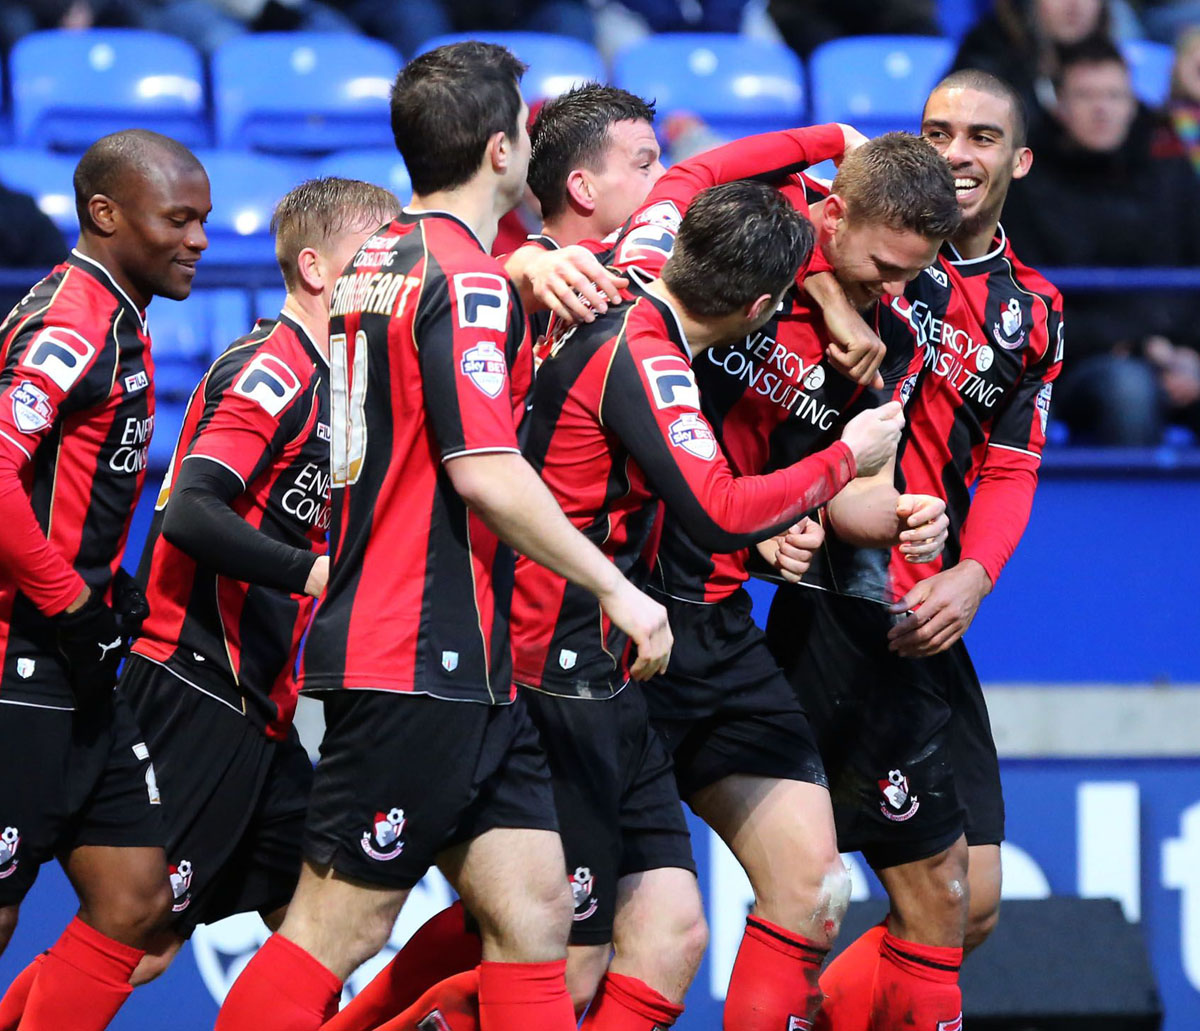 EQUALISER: Simon Francis is mobbed by team-mates after his goal